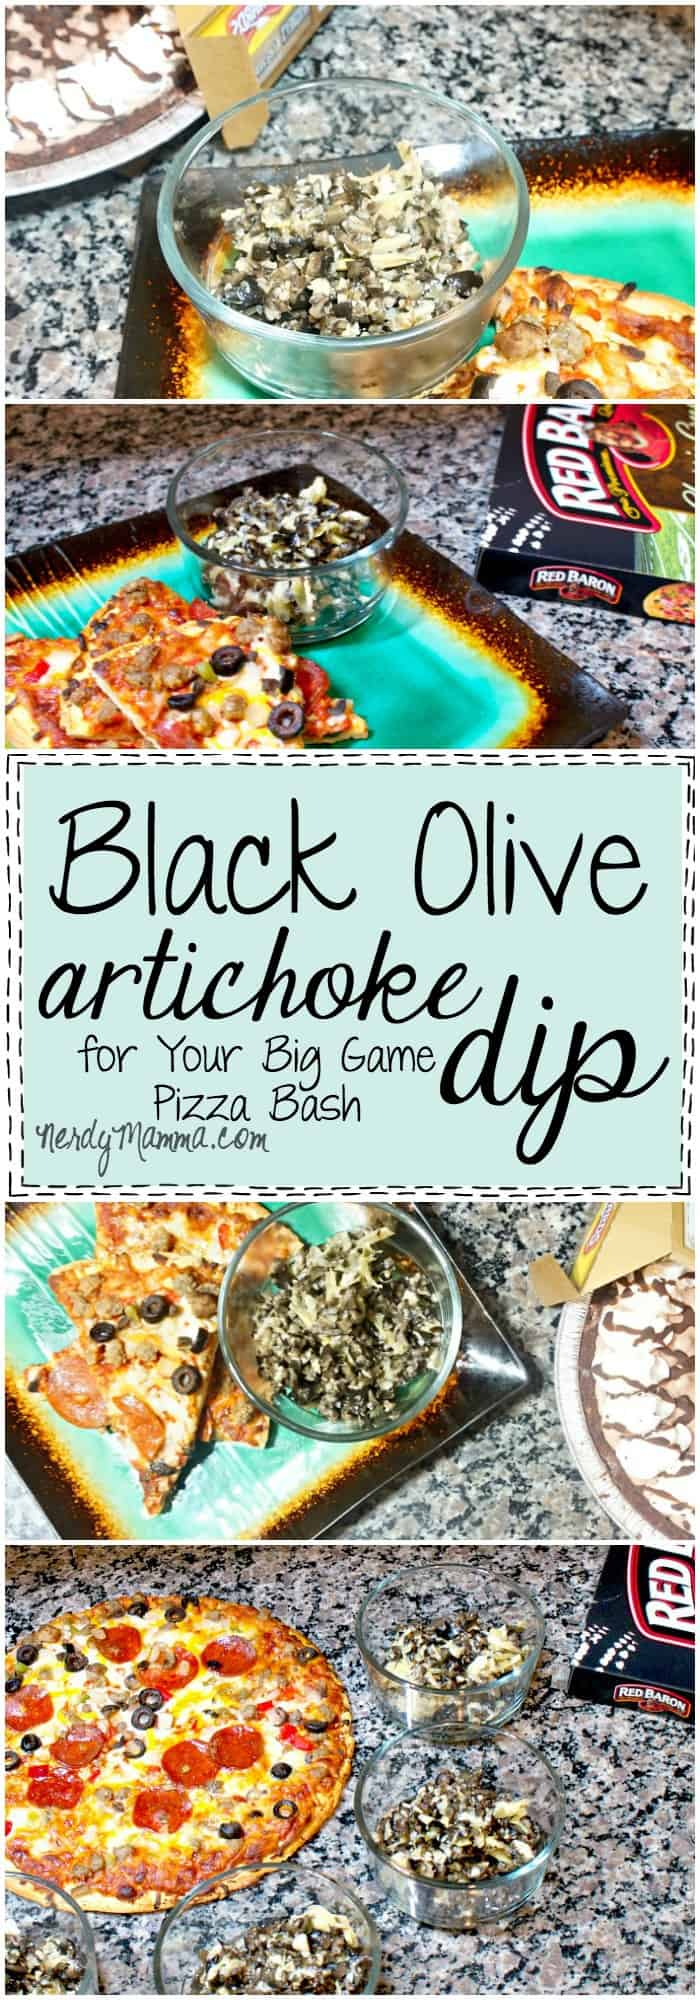 I love this recipe for Black Olive Artichoke dip. I mean, I'd never have thought of putting this on pizza, but wow!